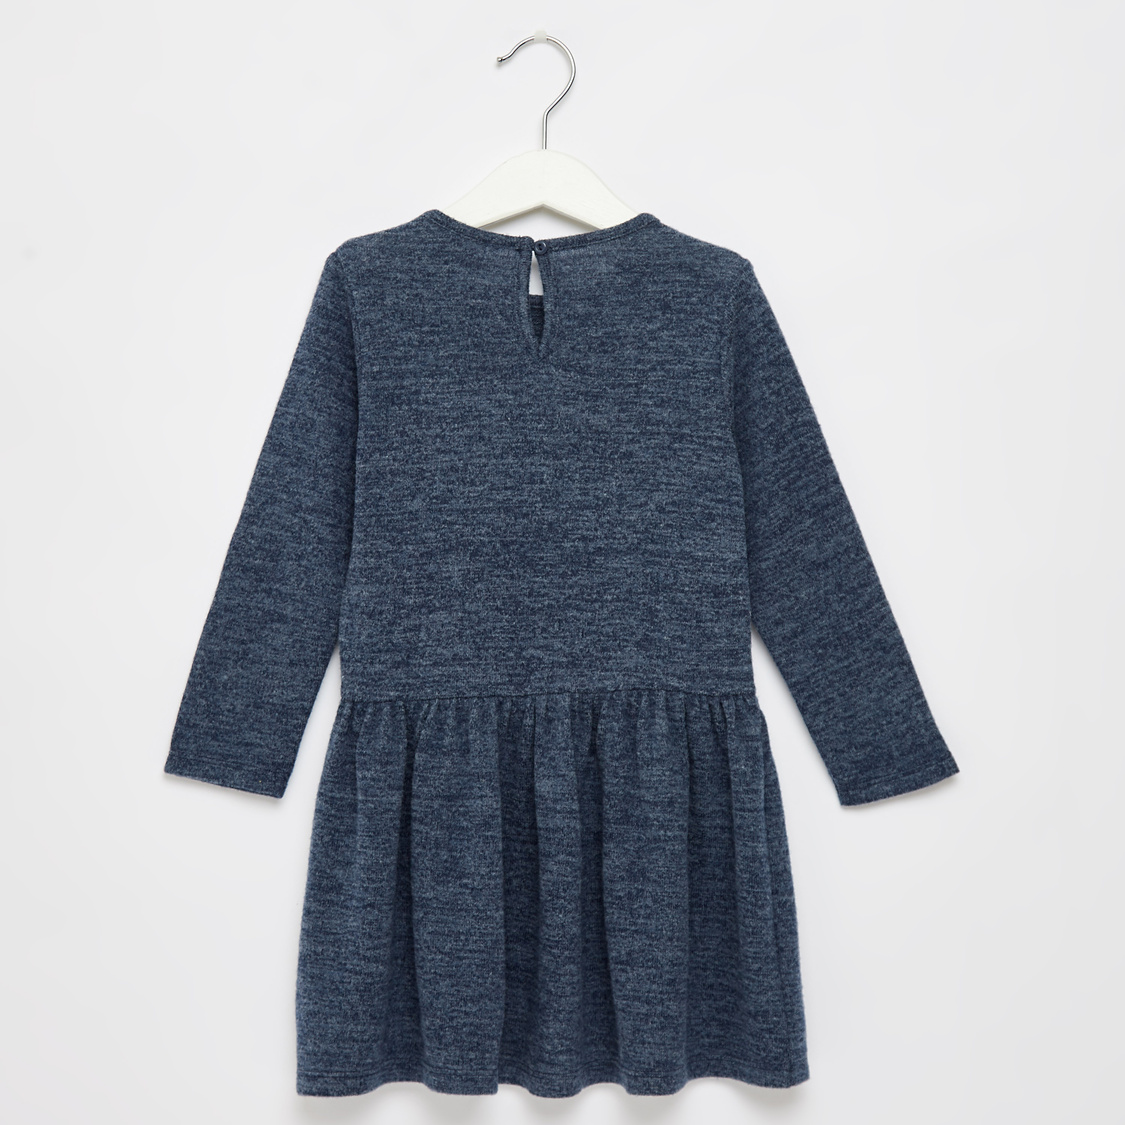 Solid Round Neck Dress with Long Sleeves and Ruffle Detail